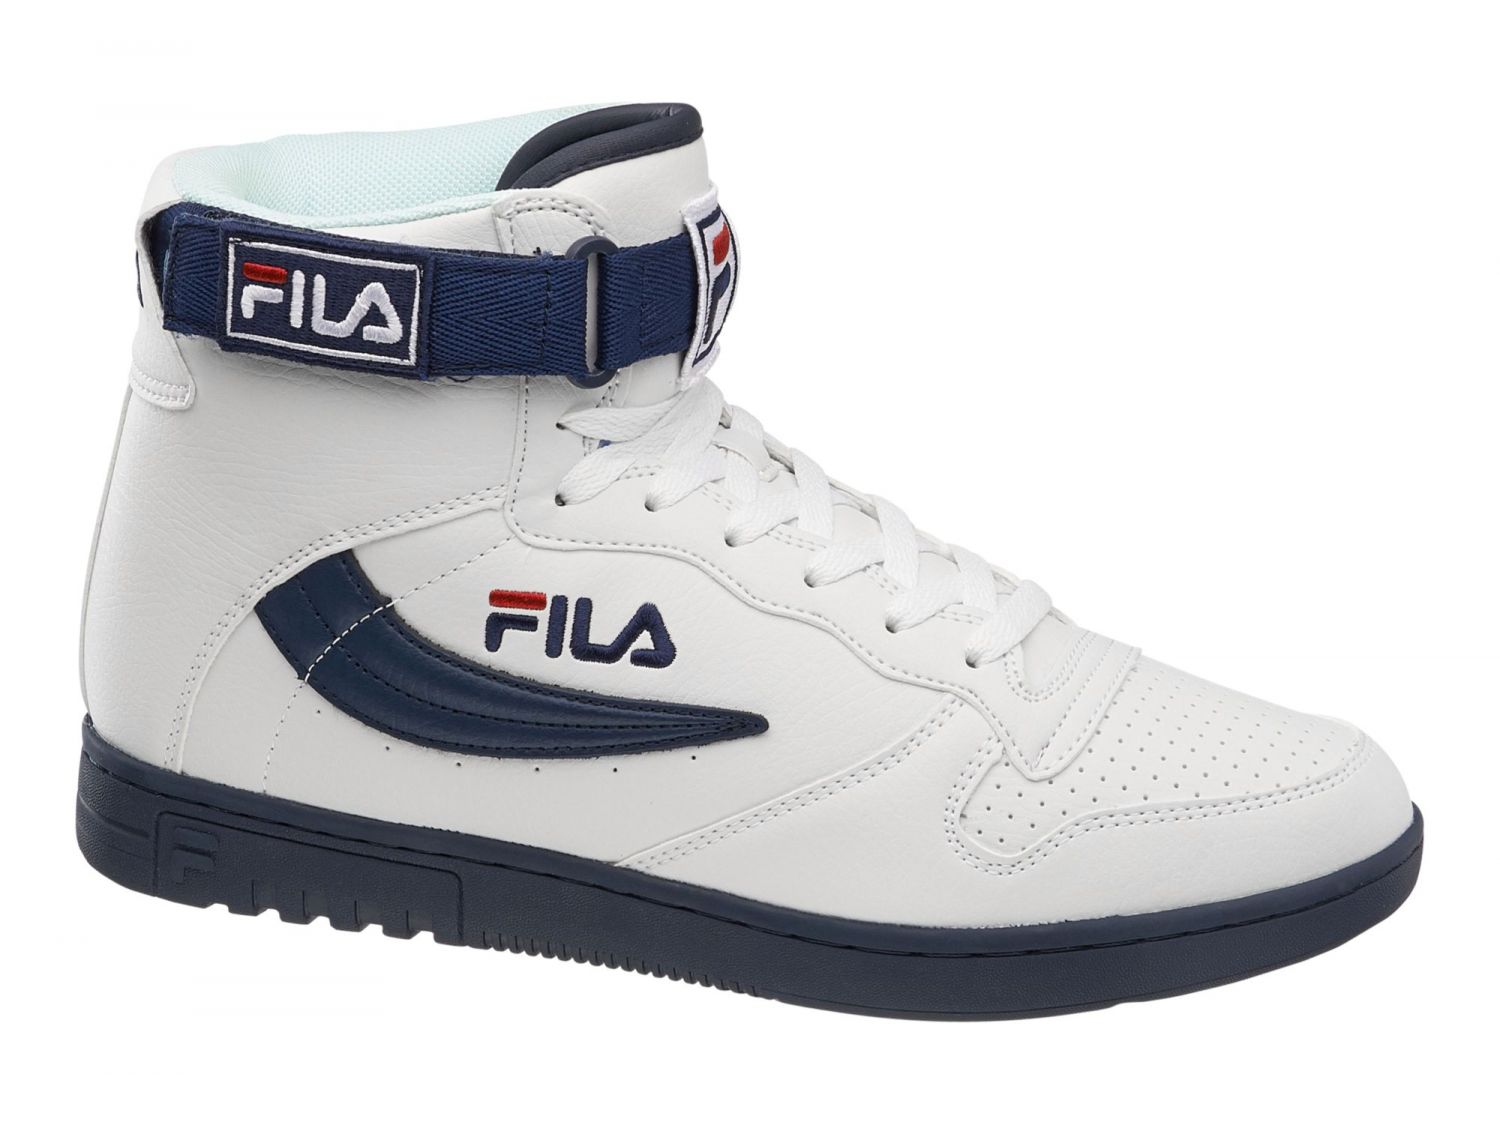 fila sneaker fx100 mid 00014201479862 white fila. Black Bedroom Furniture Sets. Home Design Ideas